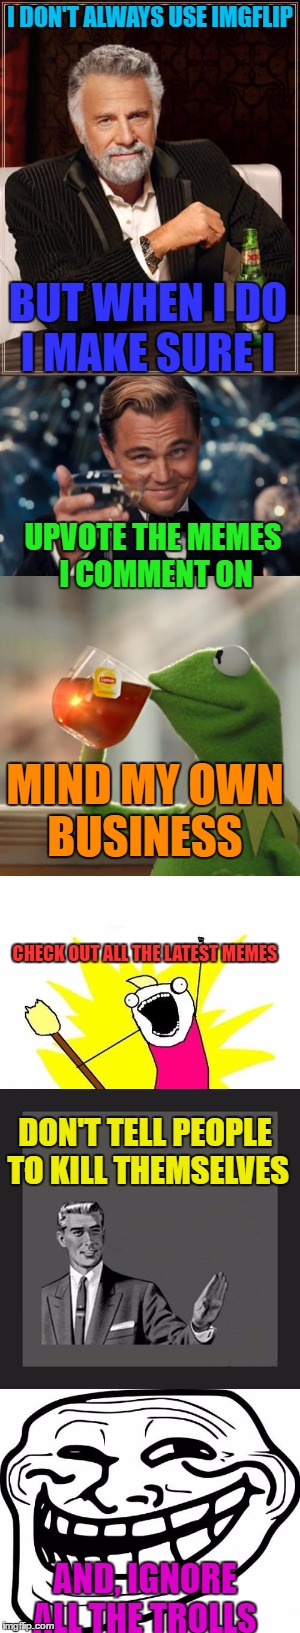 Rules To Flip By  | I DON'T ALWAYS USE IMGFLIP BUT WHEN I DO I MAKE SURE I UPVOTE THE MEMES I COMMENT ON MIND MY OWN BUSINESS CHECK OUT ALL THE LATEST MEMES DON | image tagged in memes,lol,lynch1979 | made w/ Imgflip meme maker